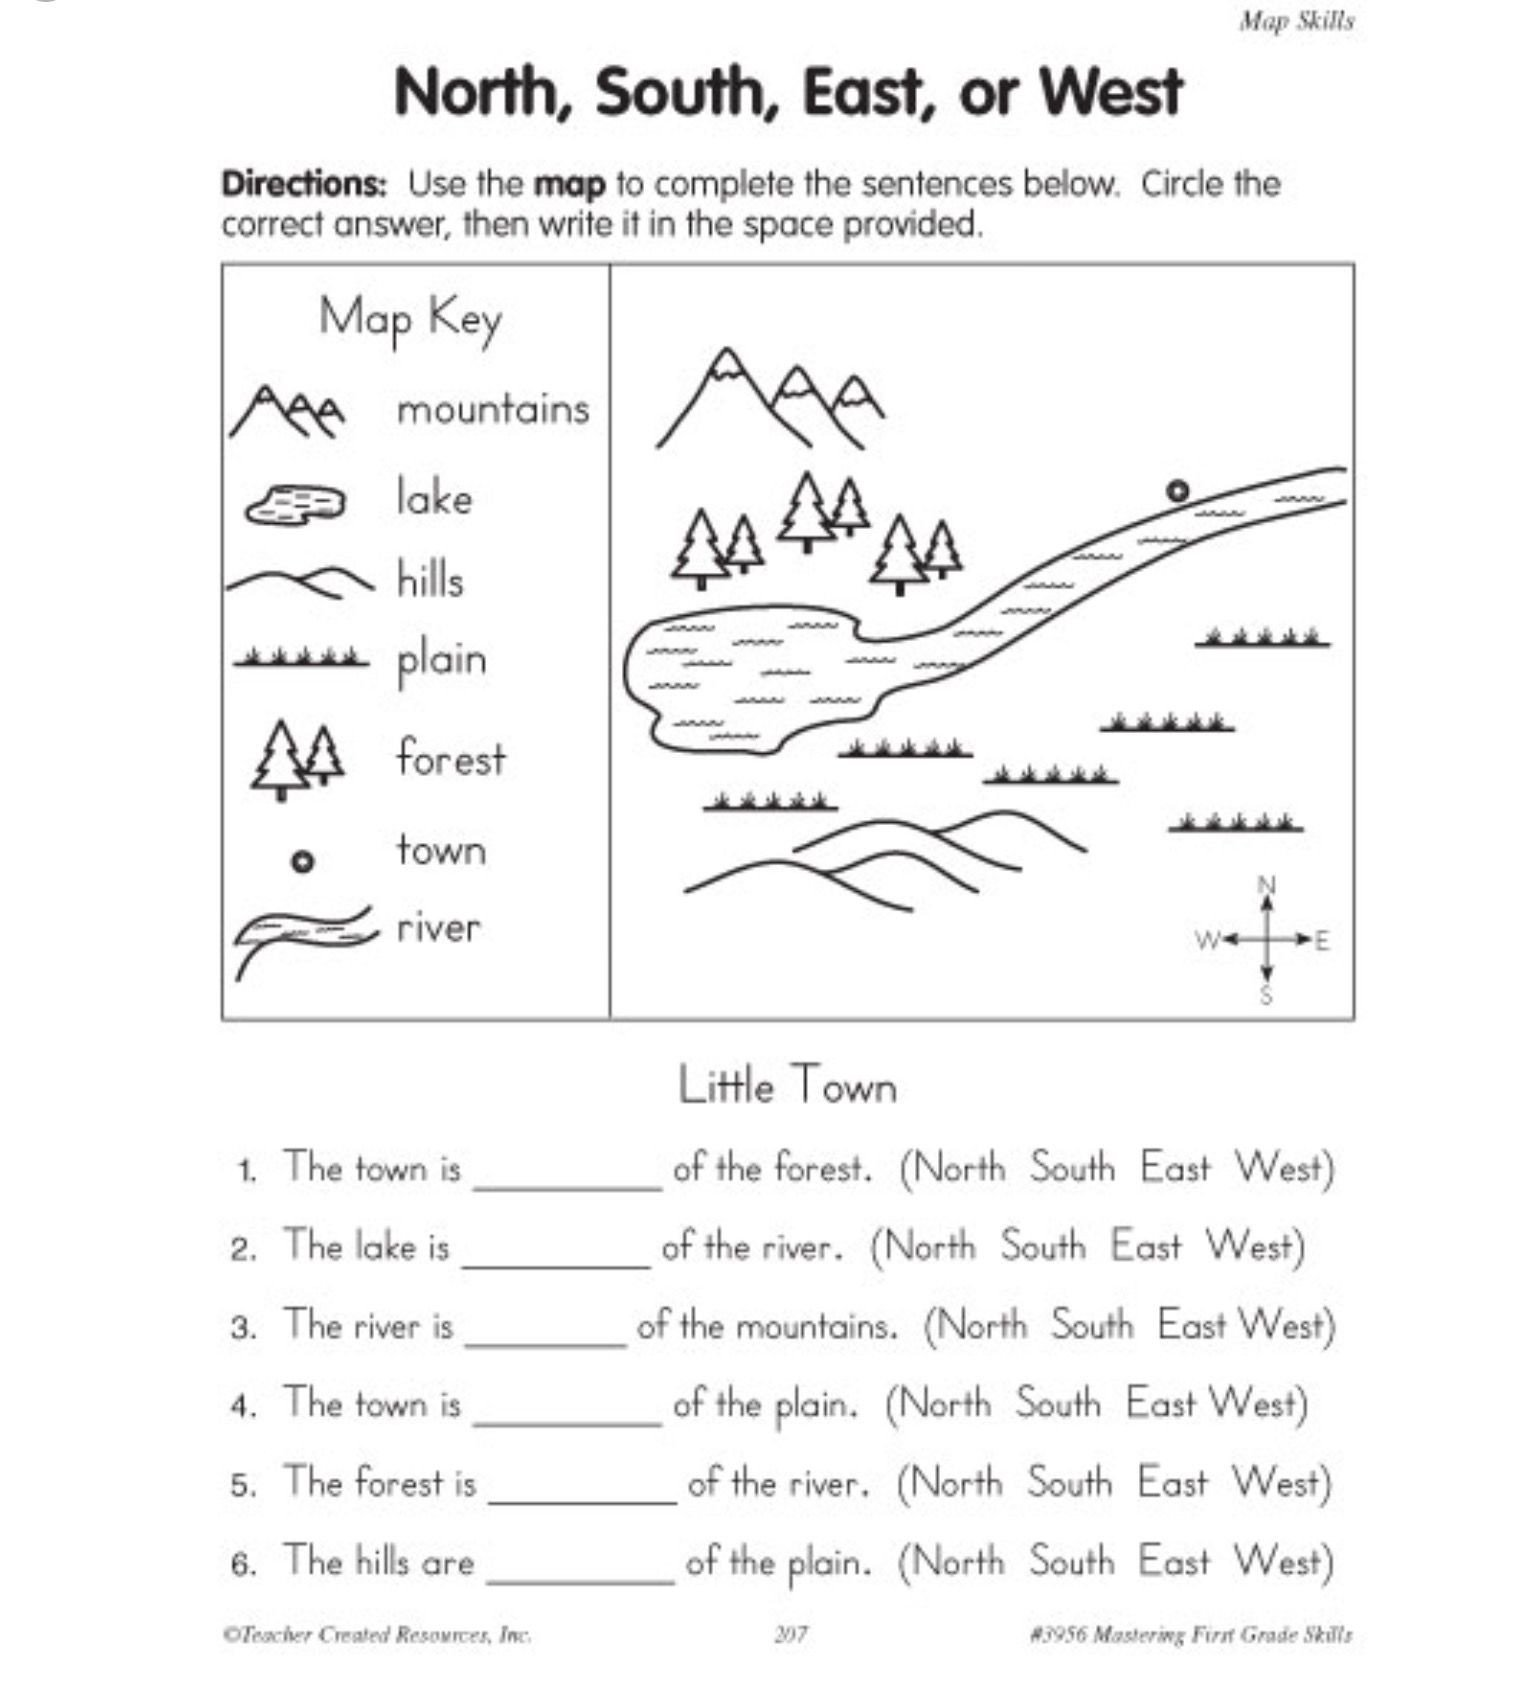 Timeline Worksheets for 1st Grade 4th Grade Worksheets social Stu S